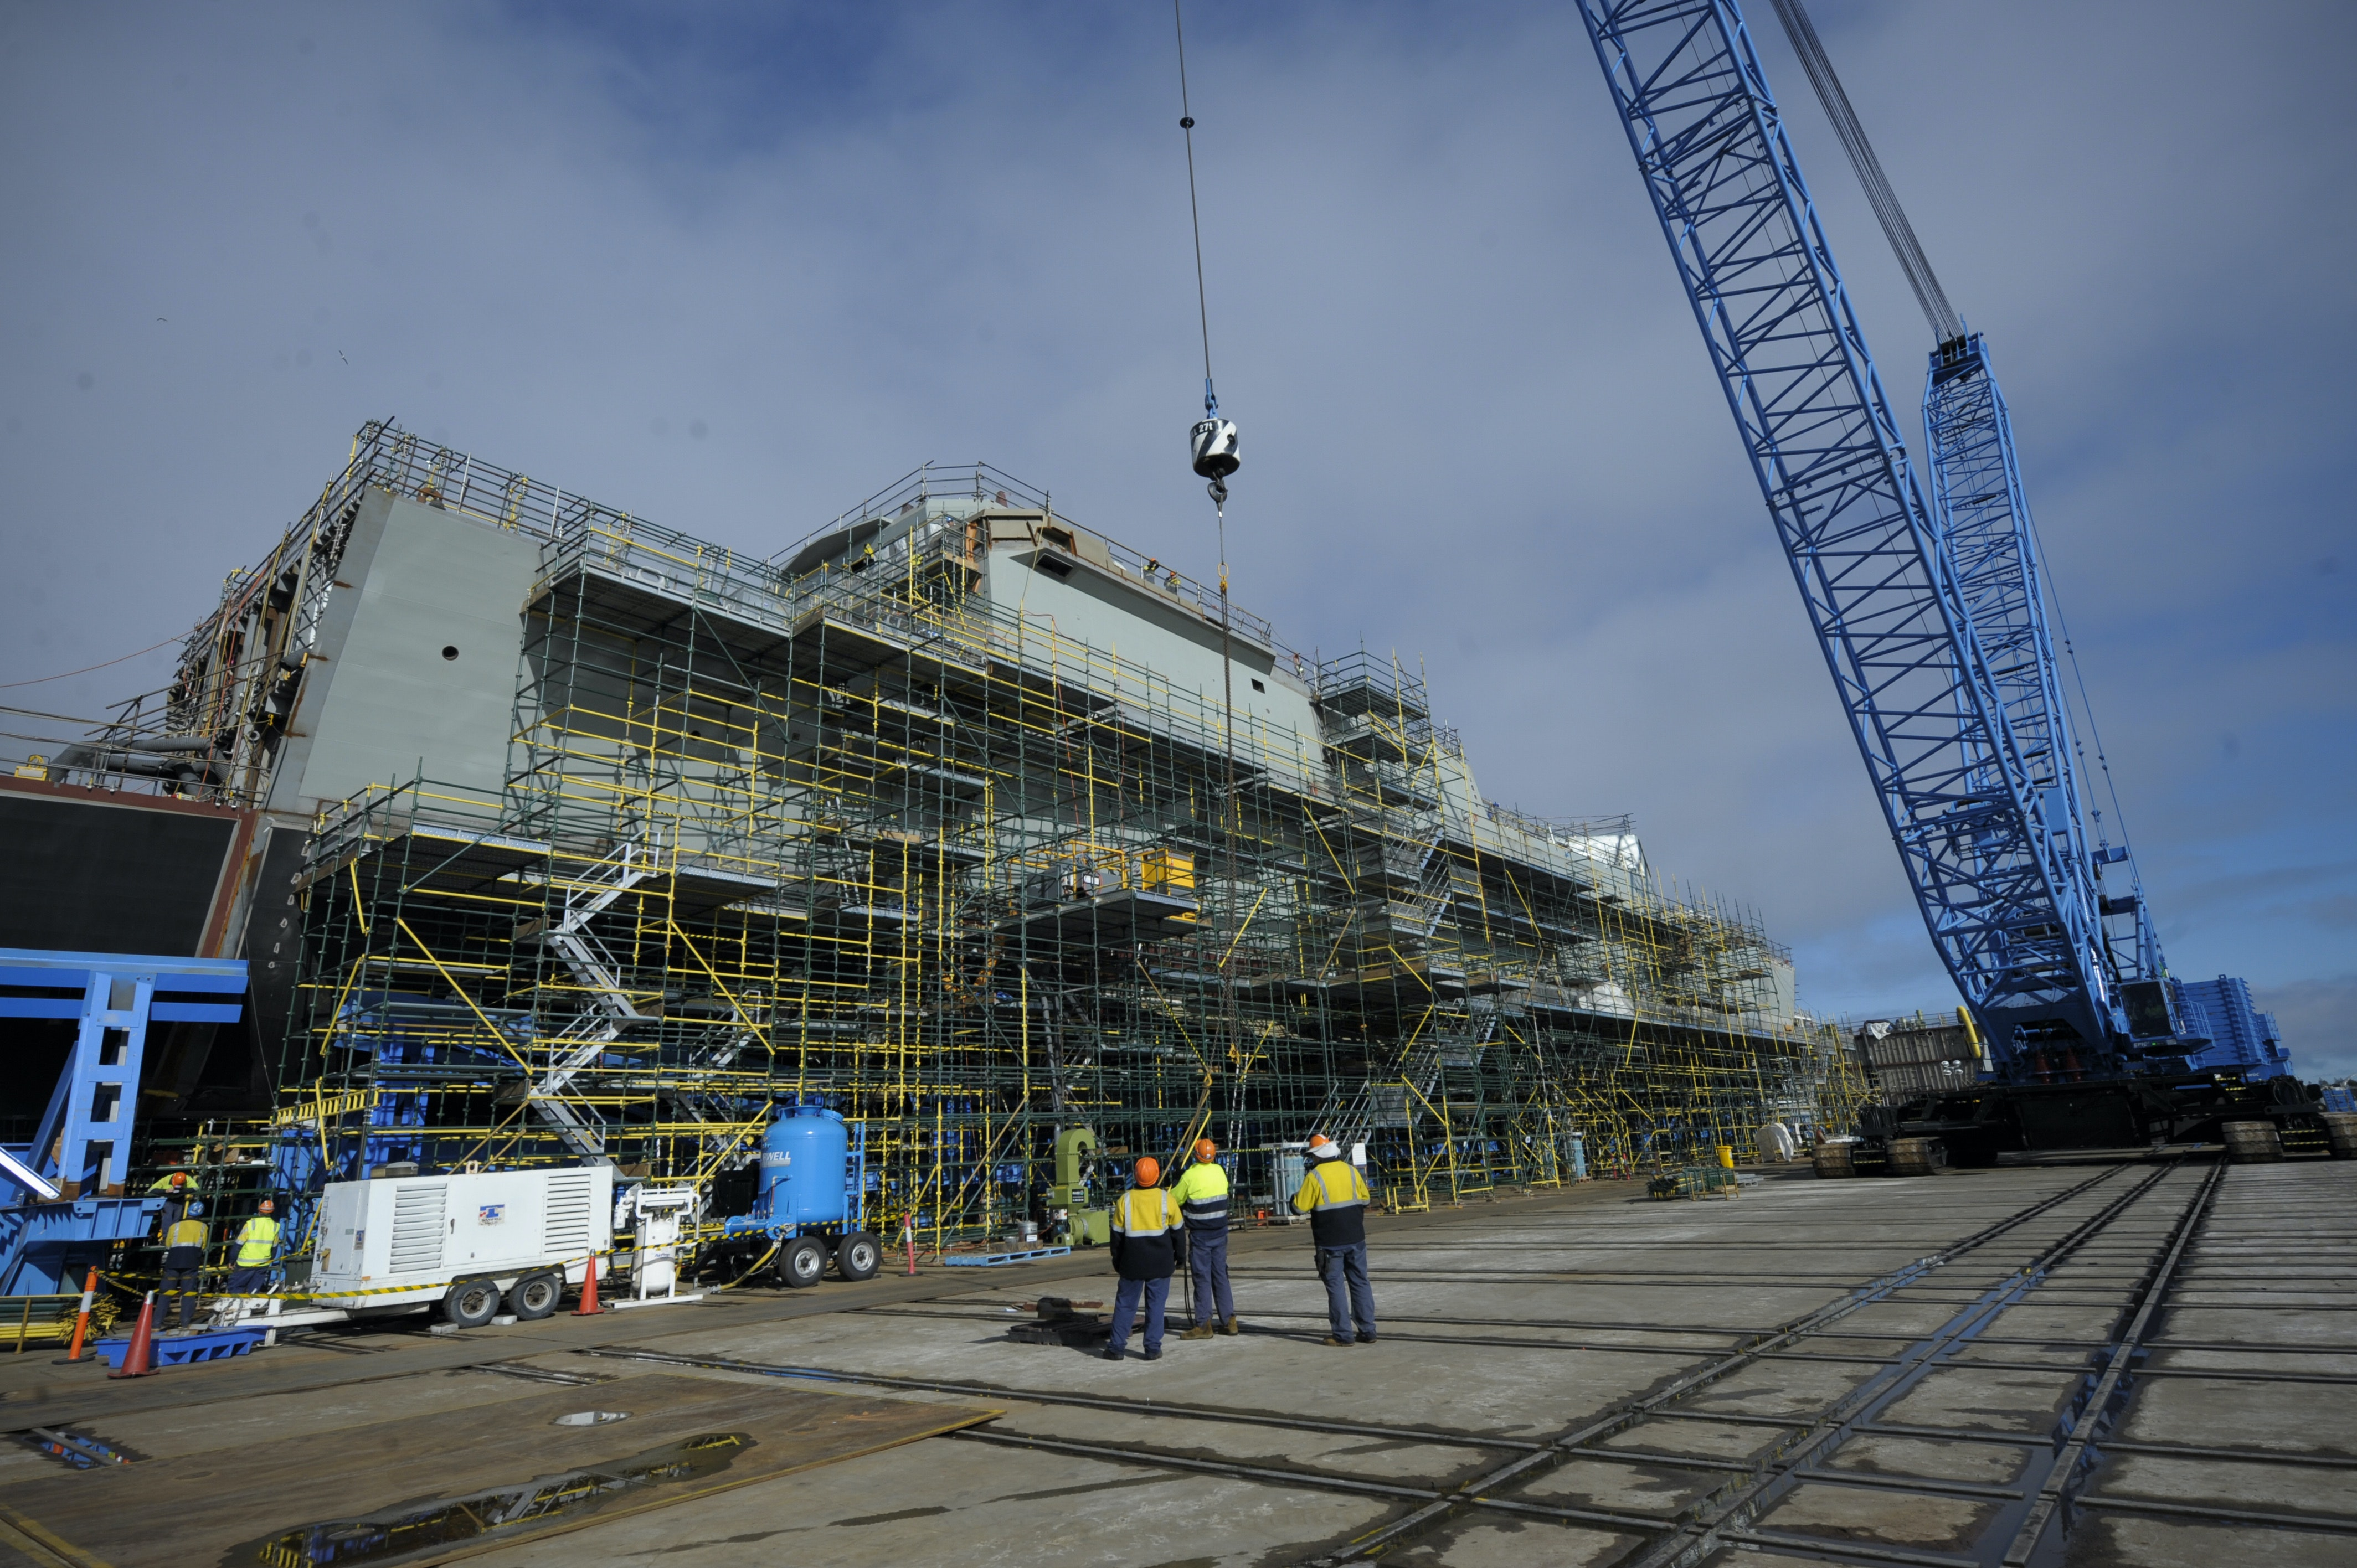 Building our own warships is Australia's path to the next industrial revolution